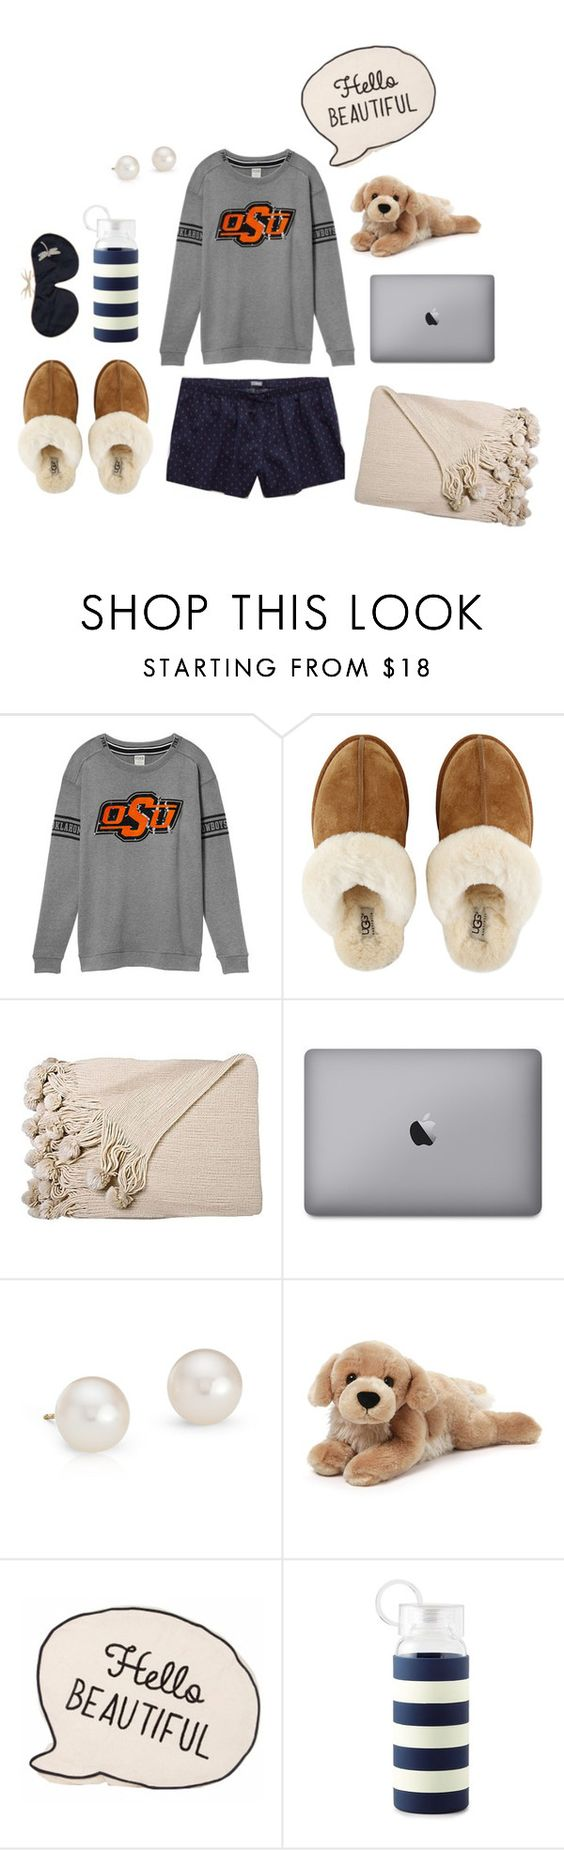 """Sunday Night Spent in Stilly"" by walzfashion ❤ liked on Polyvore featuring UGG Australia, Blue Nile, Gund, Kate Spade and Holistic Silk"